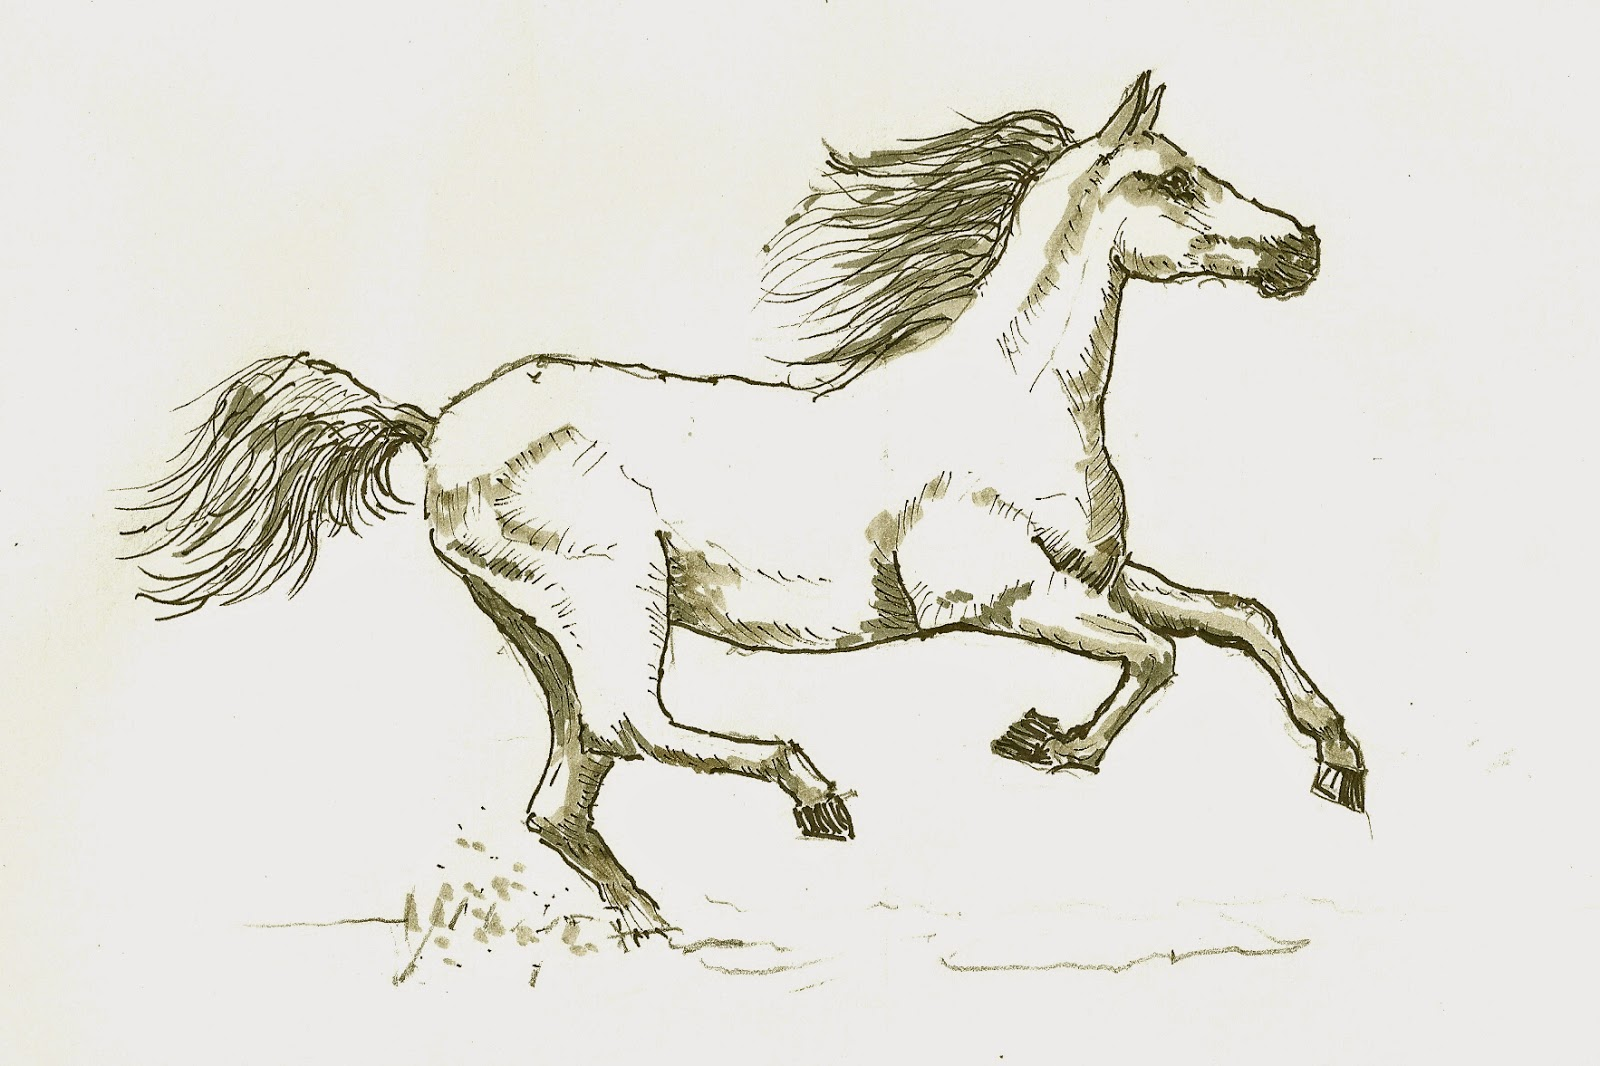 Galloping horse sketches - photo#19